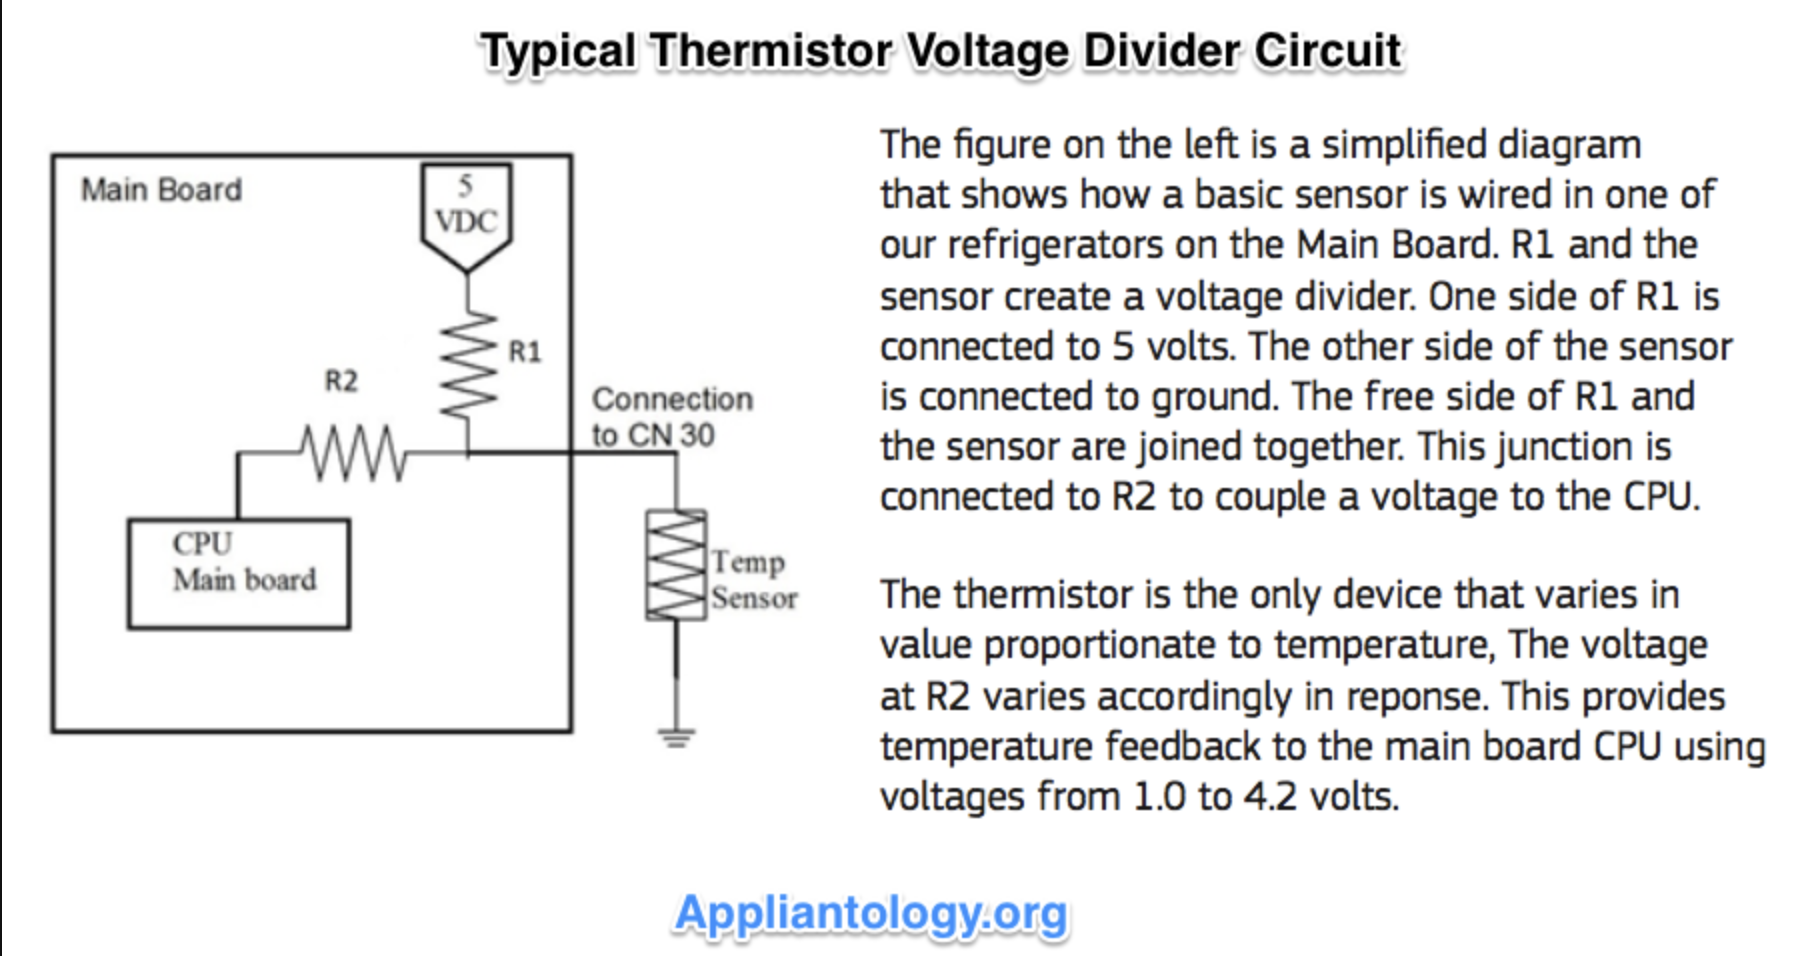 Voltage Dividers and how Control Boards Read Thermistor Input